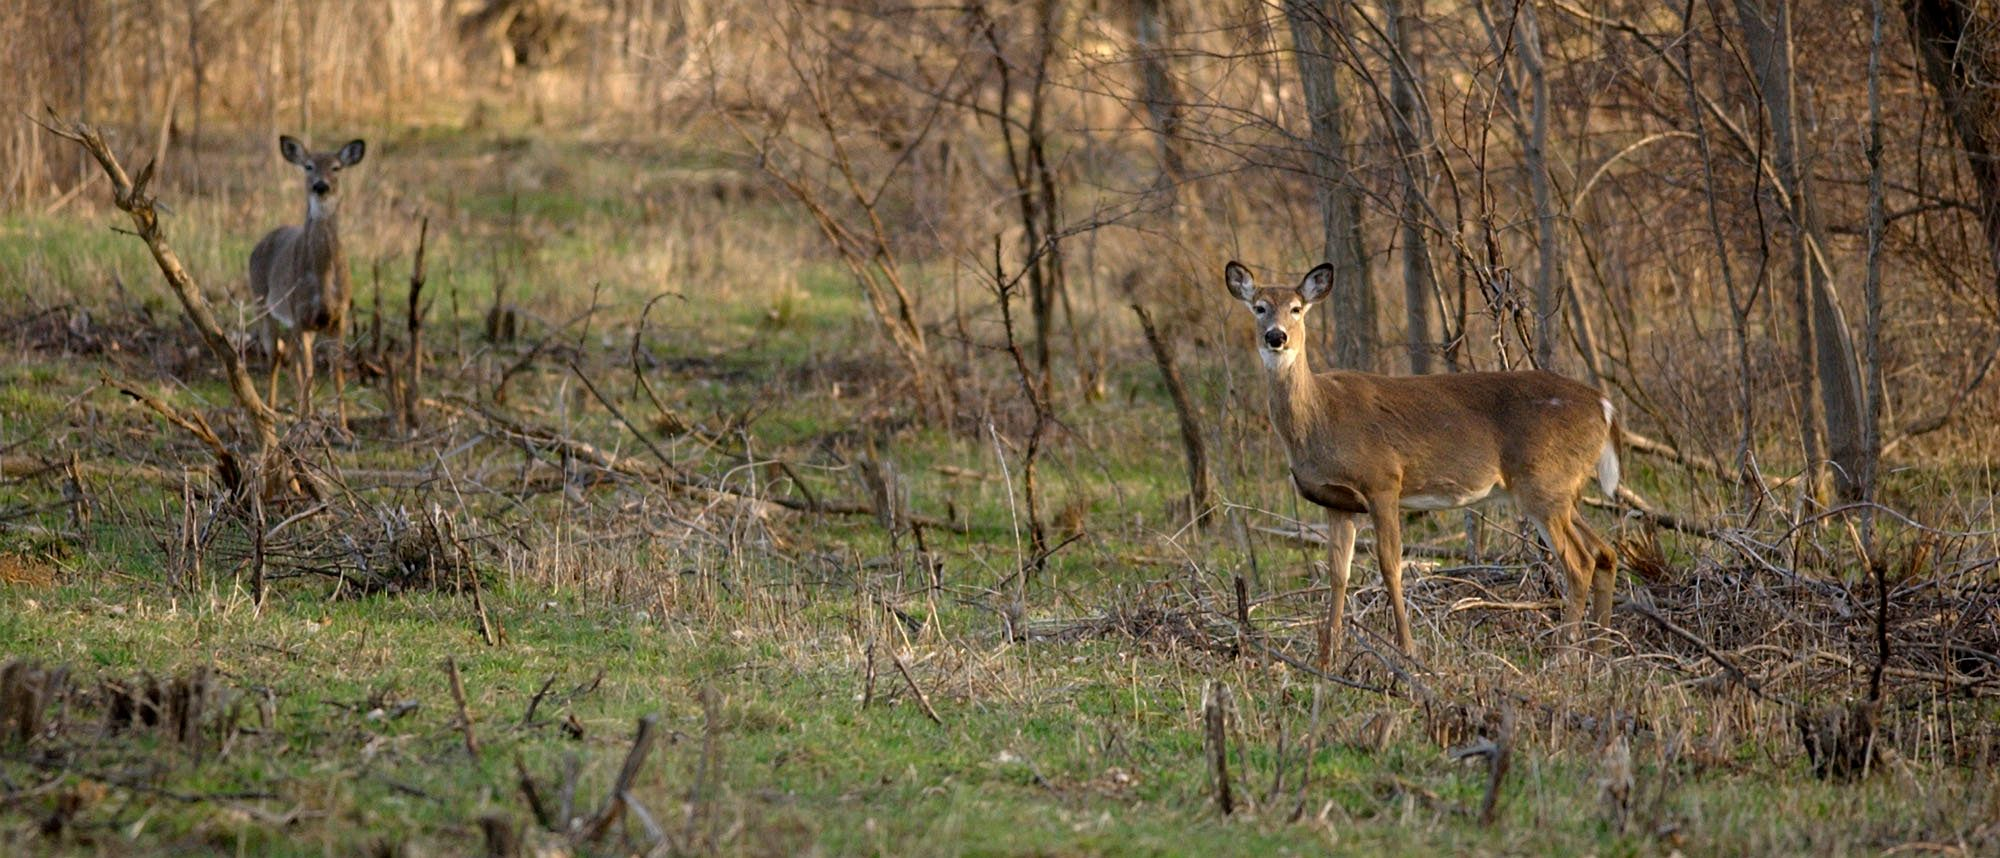 Authorities are urging hunters to take extra precautions to minimize potential exposure to the disease while handling deer ca